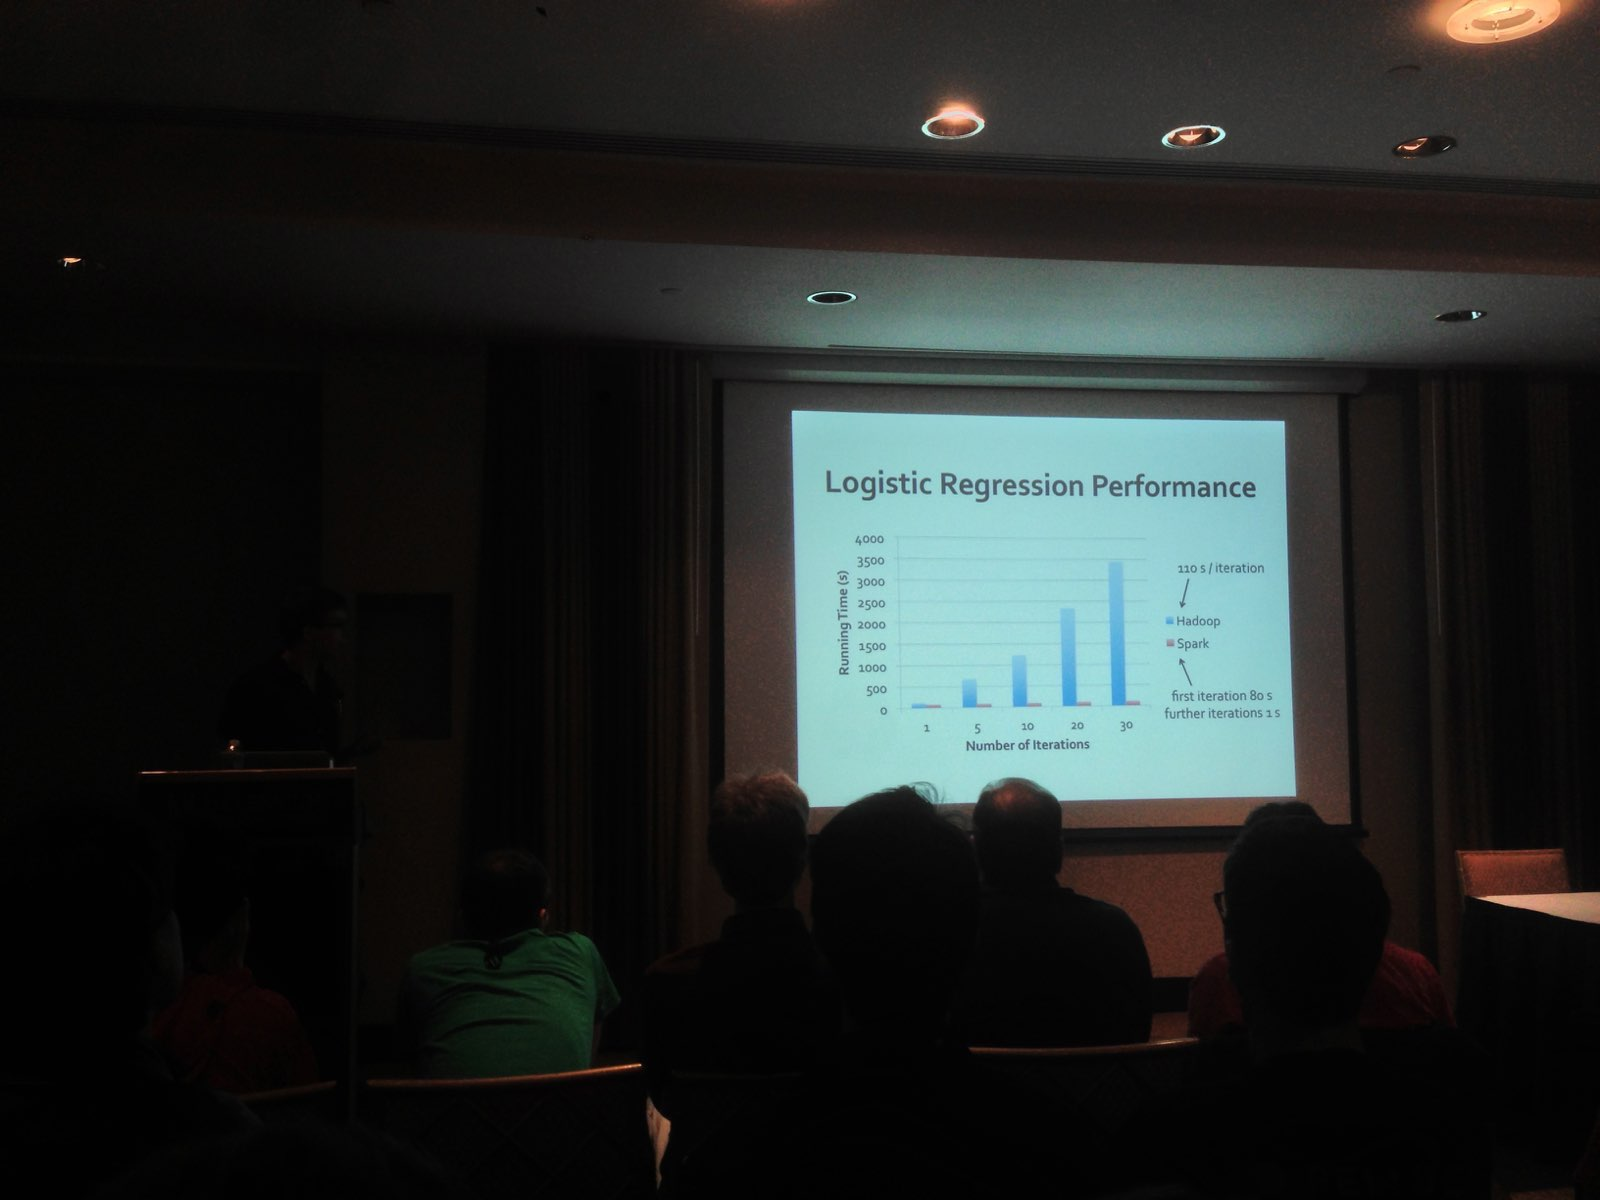 Logistic regression performance